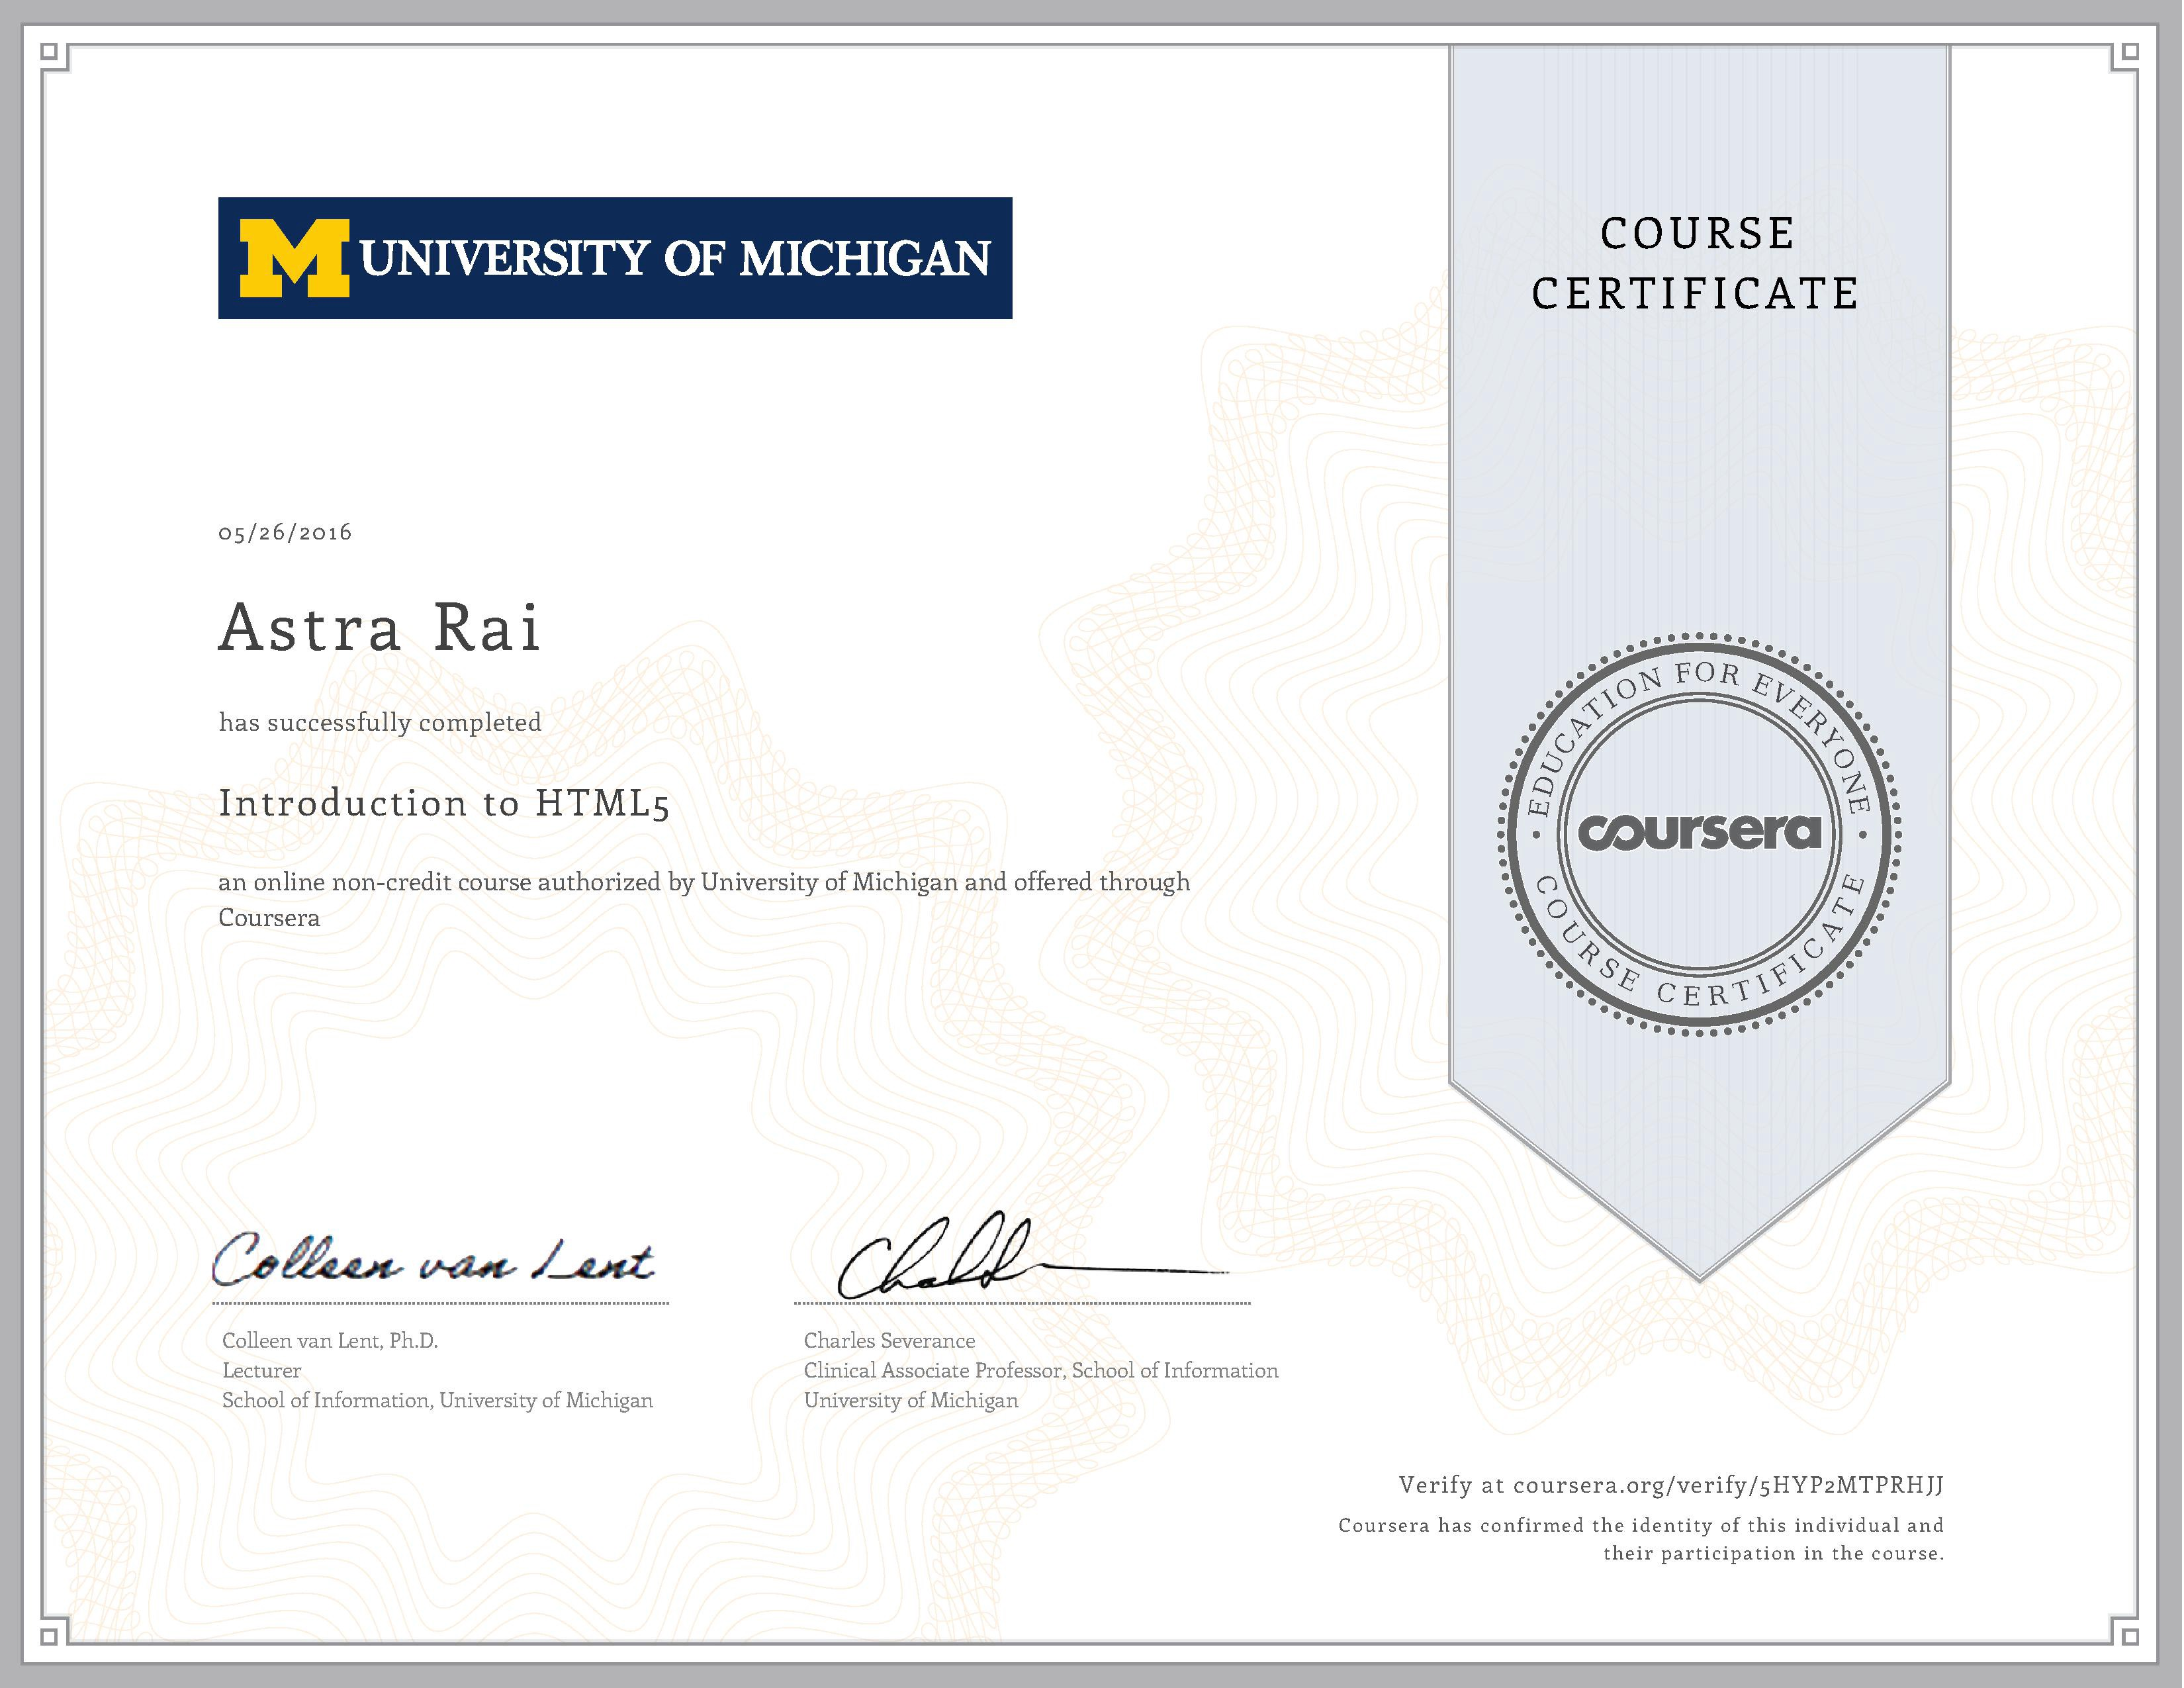 Html5 Css3 Learning Journey Part 4 Html5 Coursera Course Review By Astra Rai Medium